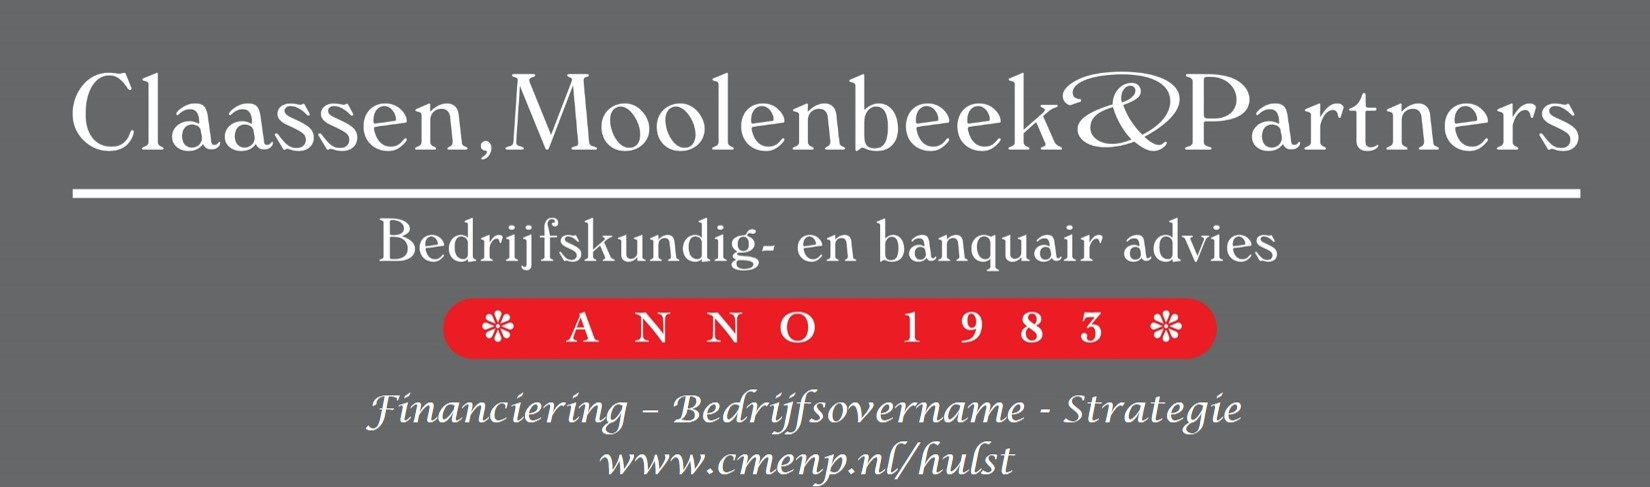 CM&P Hulst_metondertitel_websitehulst